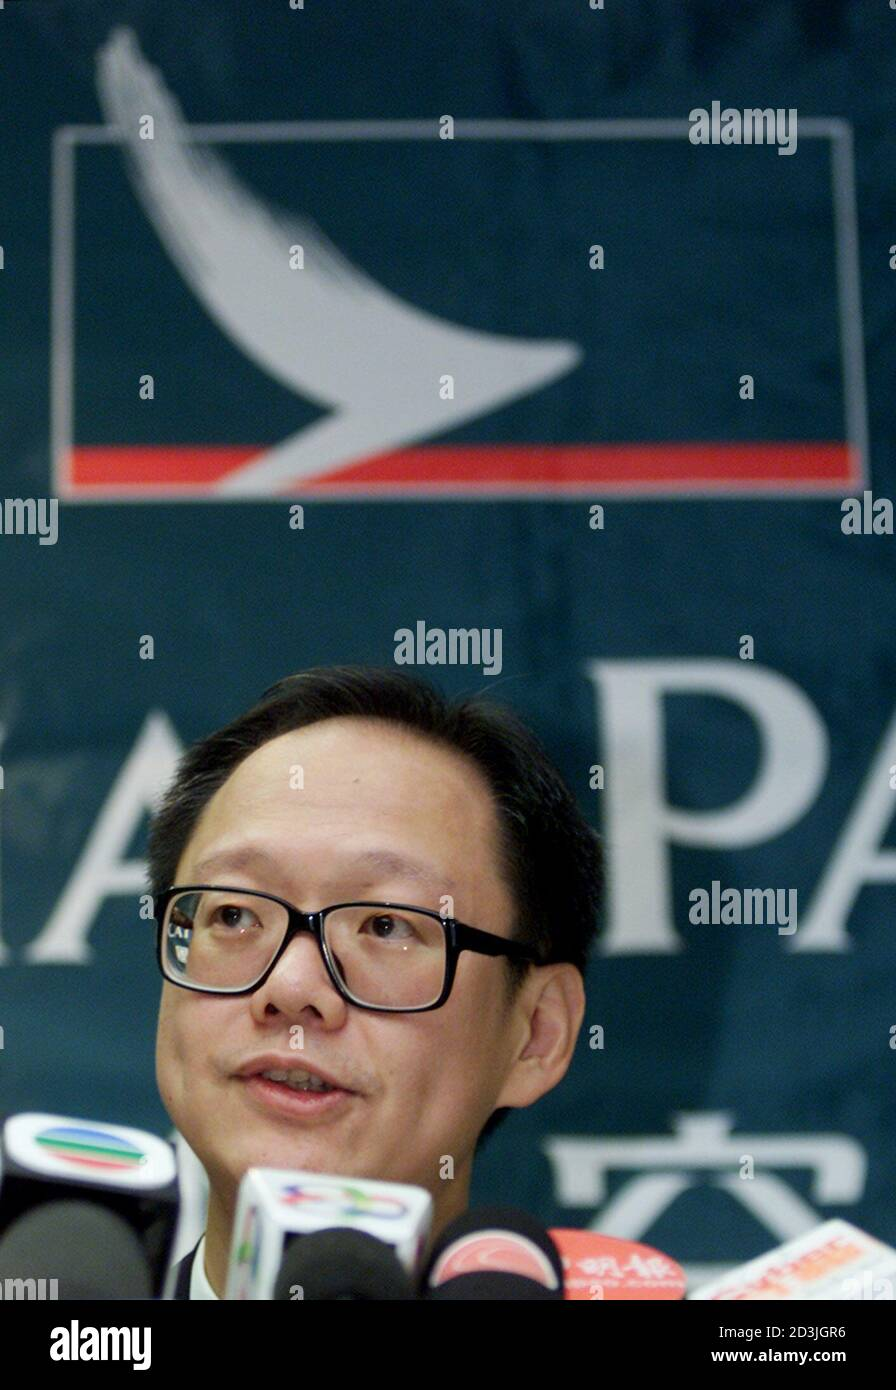 Philip Chen, director and chief operating officer of Cathay Pacific Airways, speaks during a news conference in Hong Kong, July 9, 2001. Asia's fourth largest airline said on Monday it had sacked 49 pilots and would implement a new pay and rostering package unilaterally, in effect trying to impose its will on pilots during the second major dispute between Cathay pilots and management in as many years.  BY/RCS Stock Photo